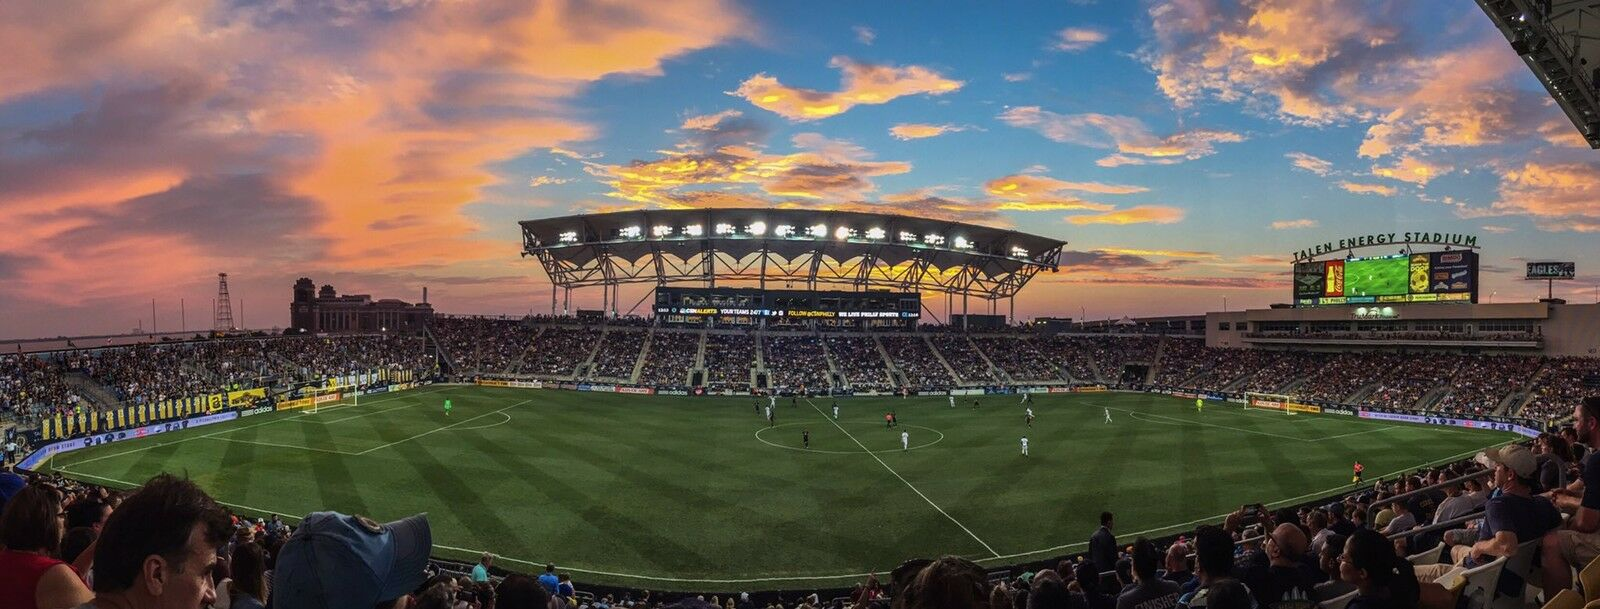 New England Revolution at Philadelphia Union